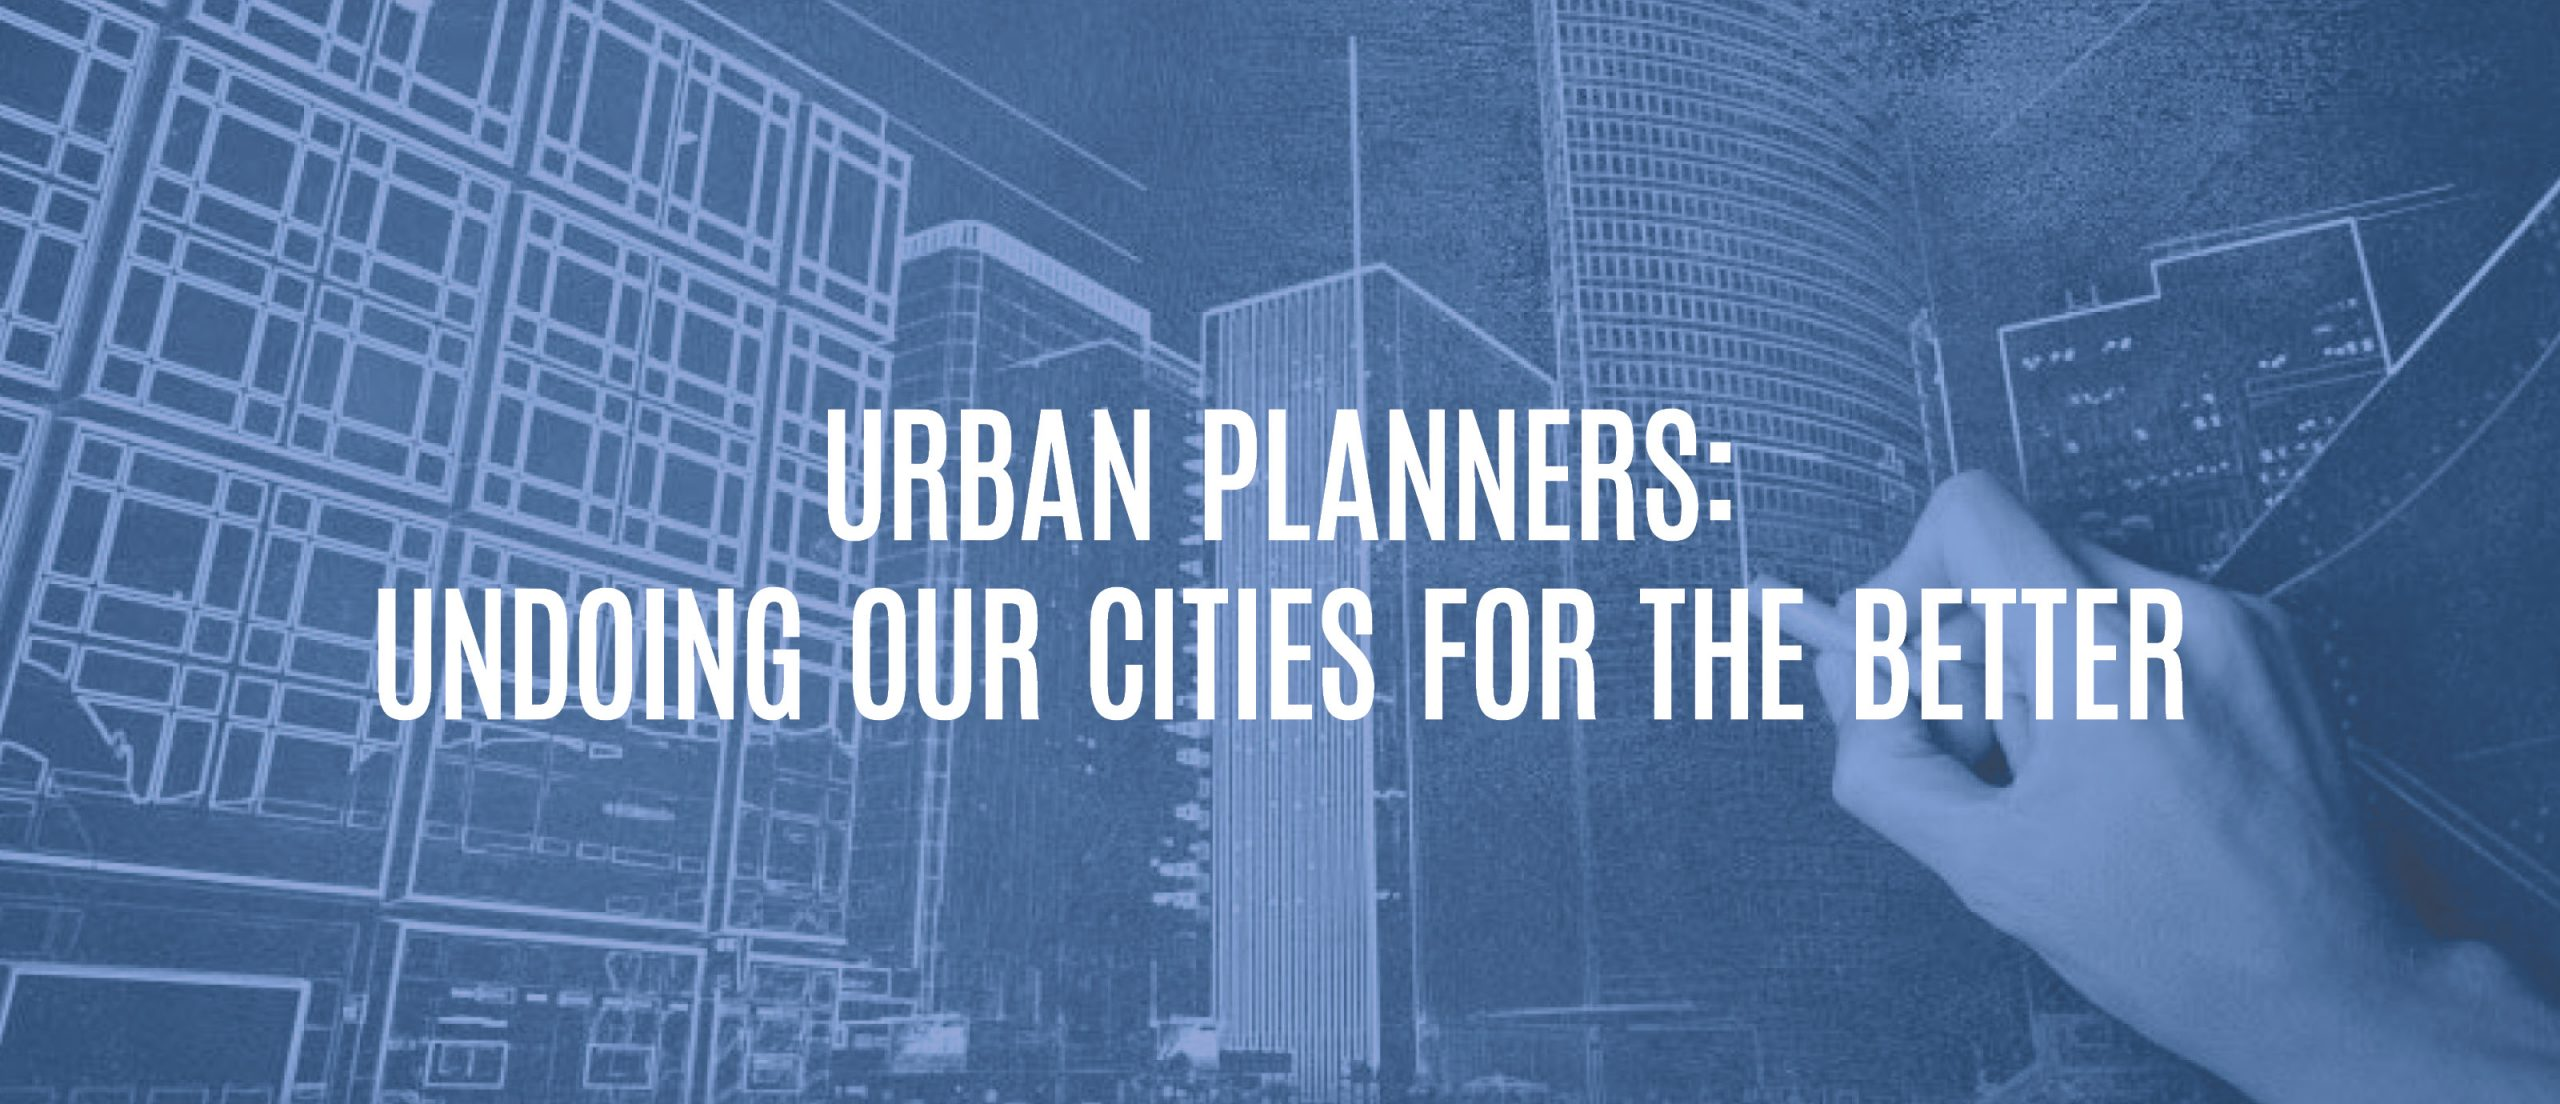 Blog Title - Urban planners: undoing our cities for the better